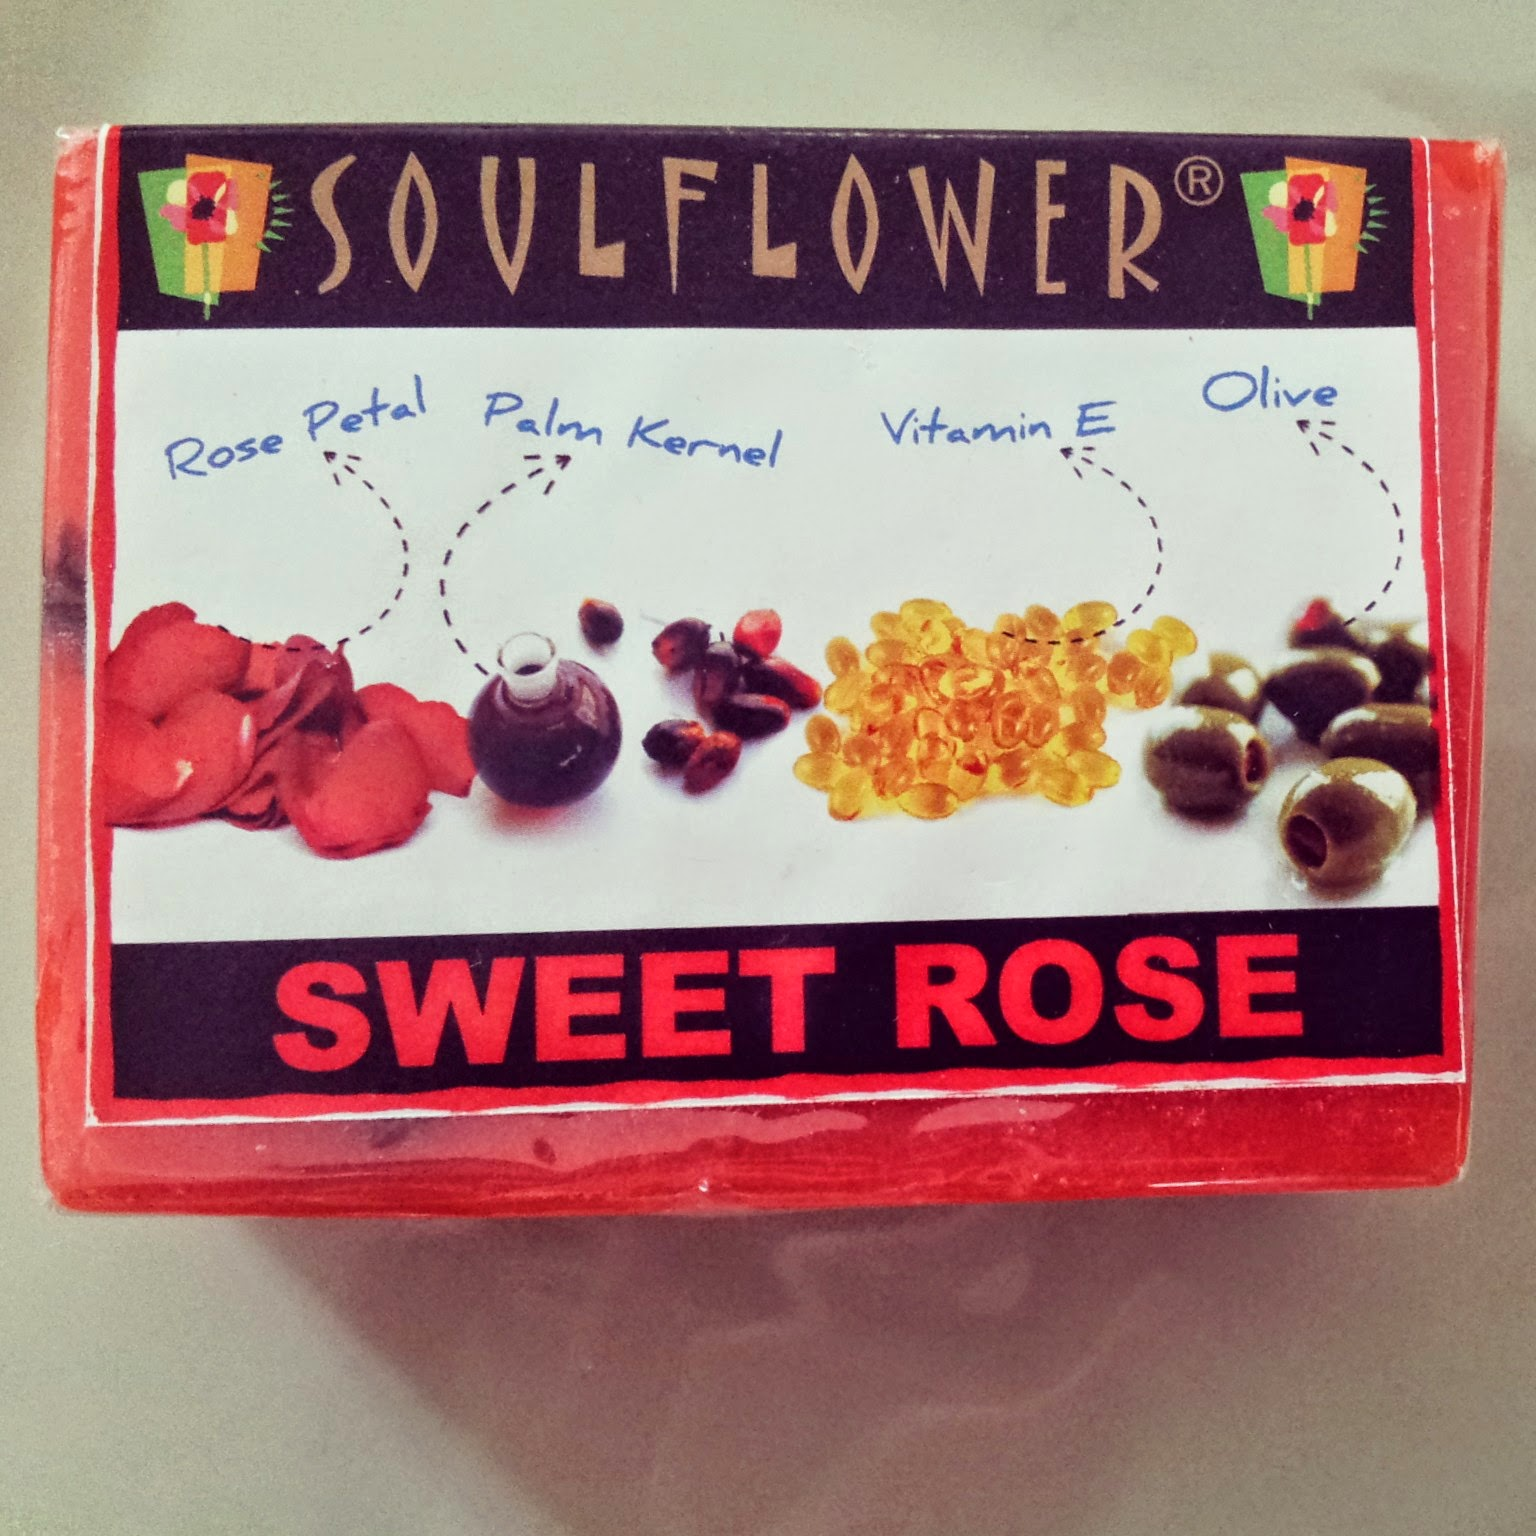 Soulflower Sweet Rose Soap Review image